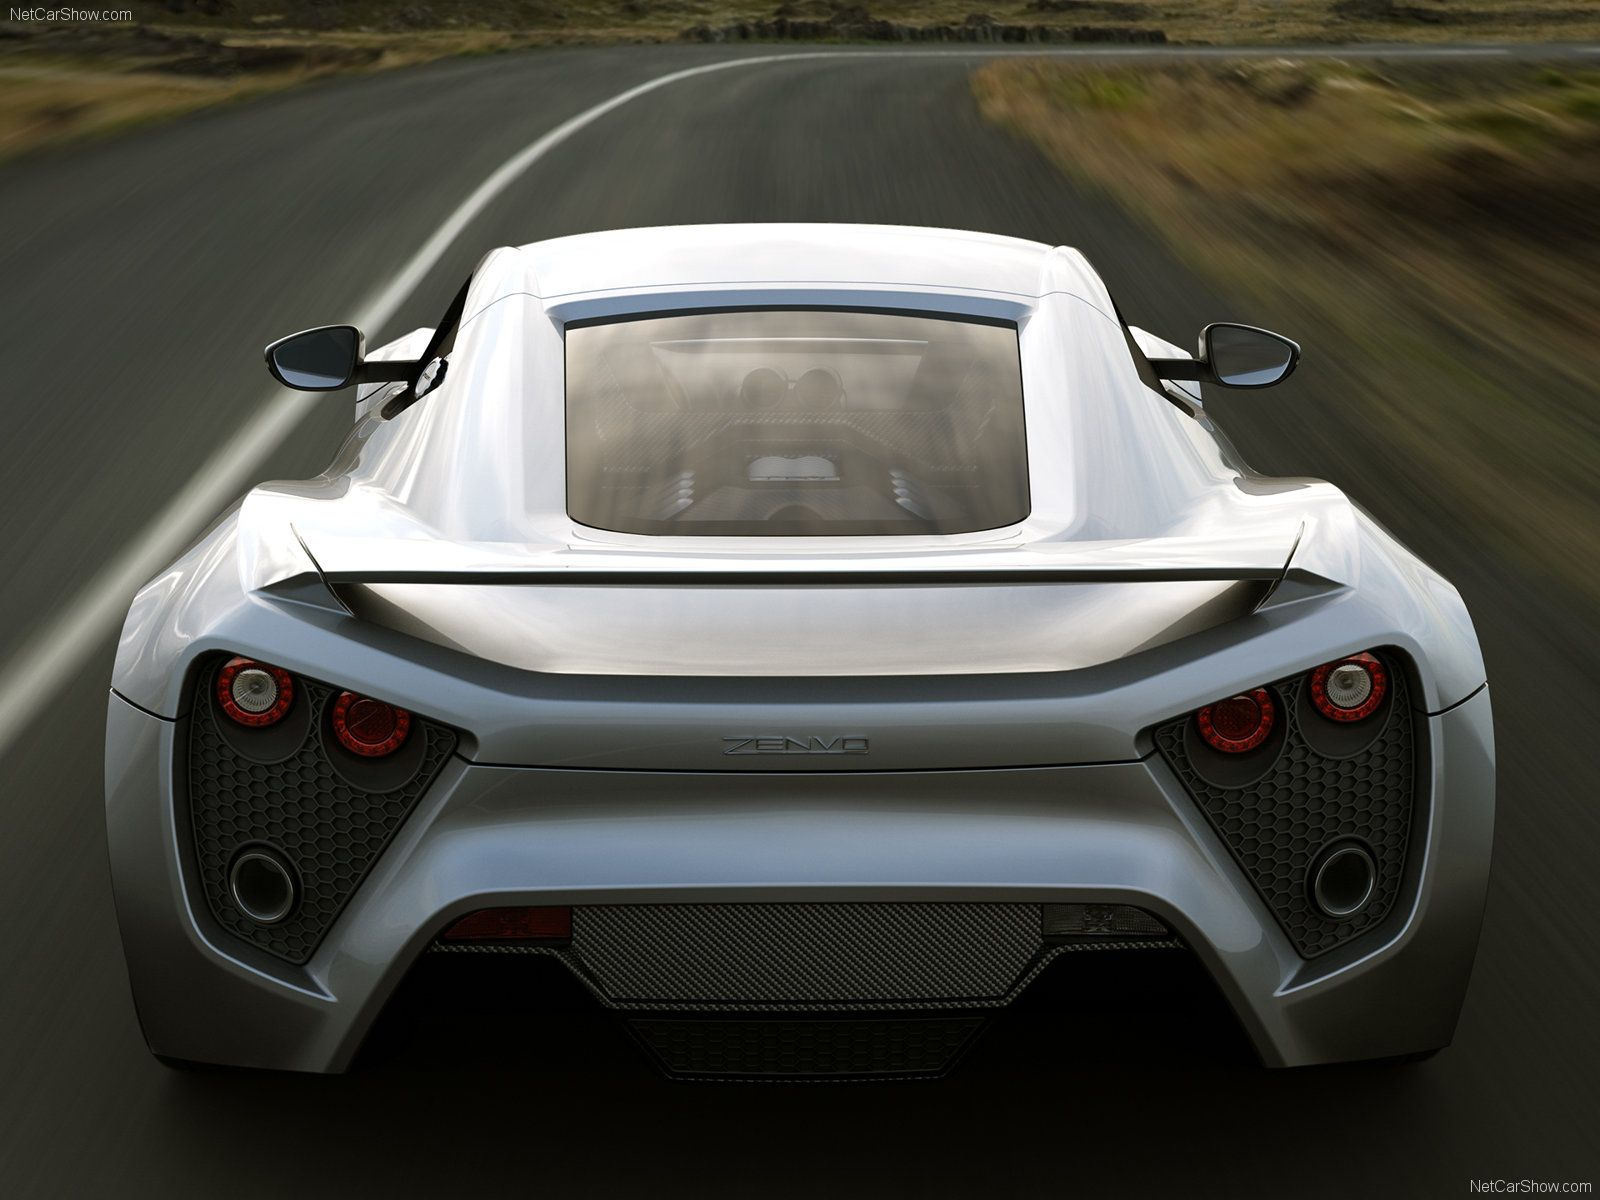 Zenvo St1 Rear View Zenvo St1 Super Cars Dream Cars